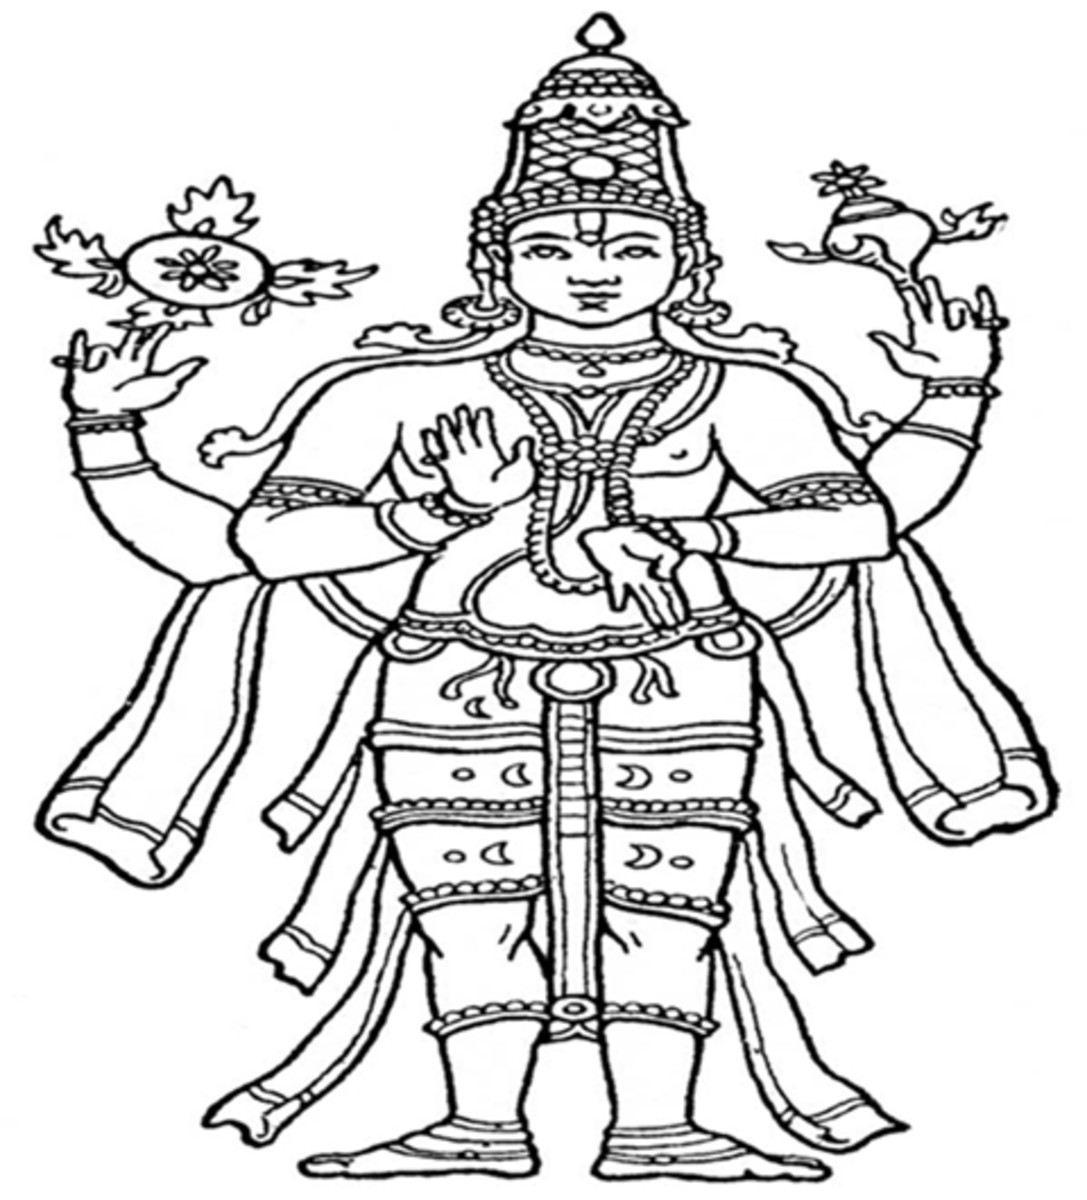 Mantras of Lord Maha Vishnu - The Preserver of the Universe